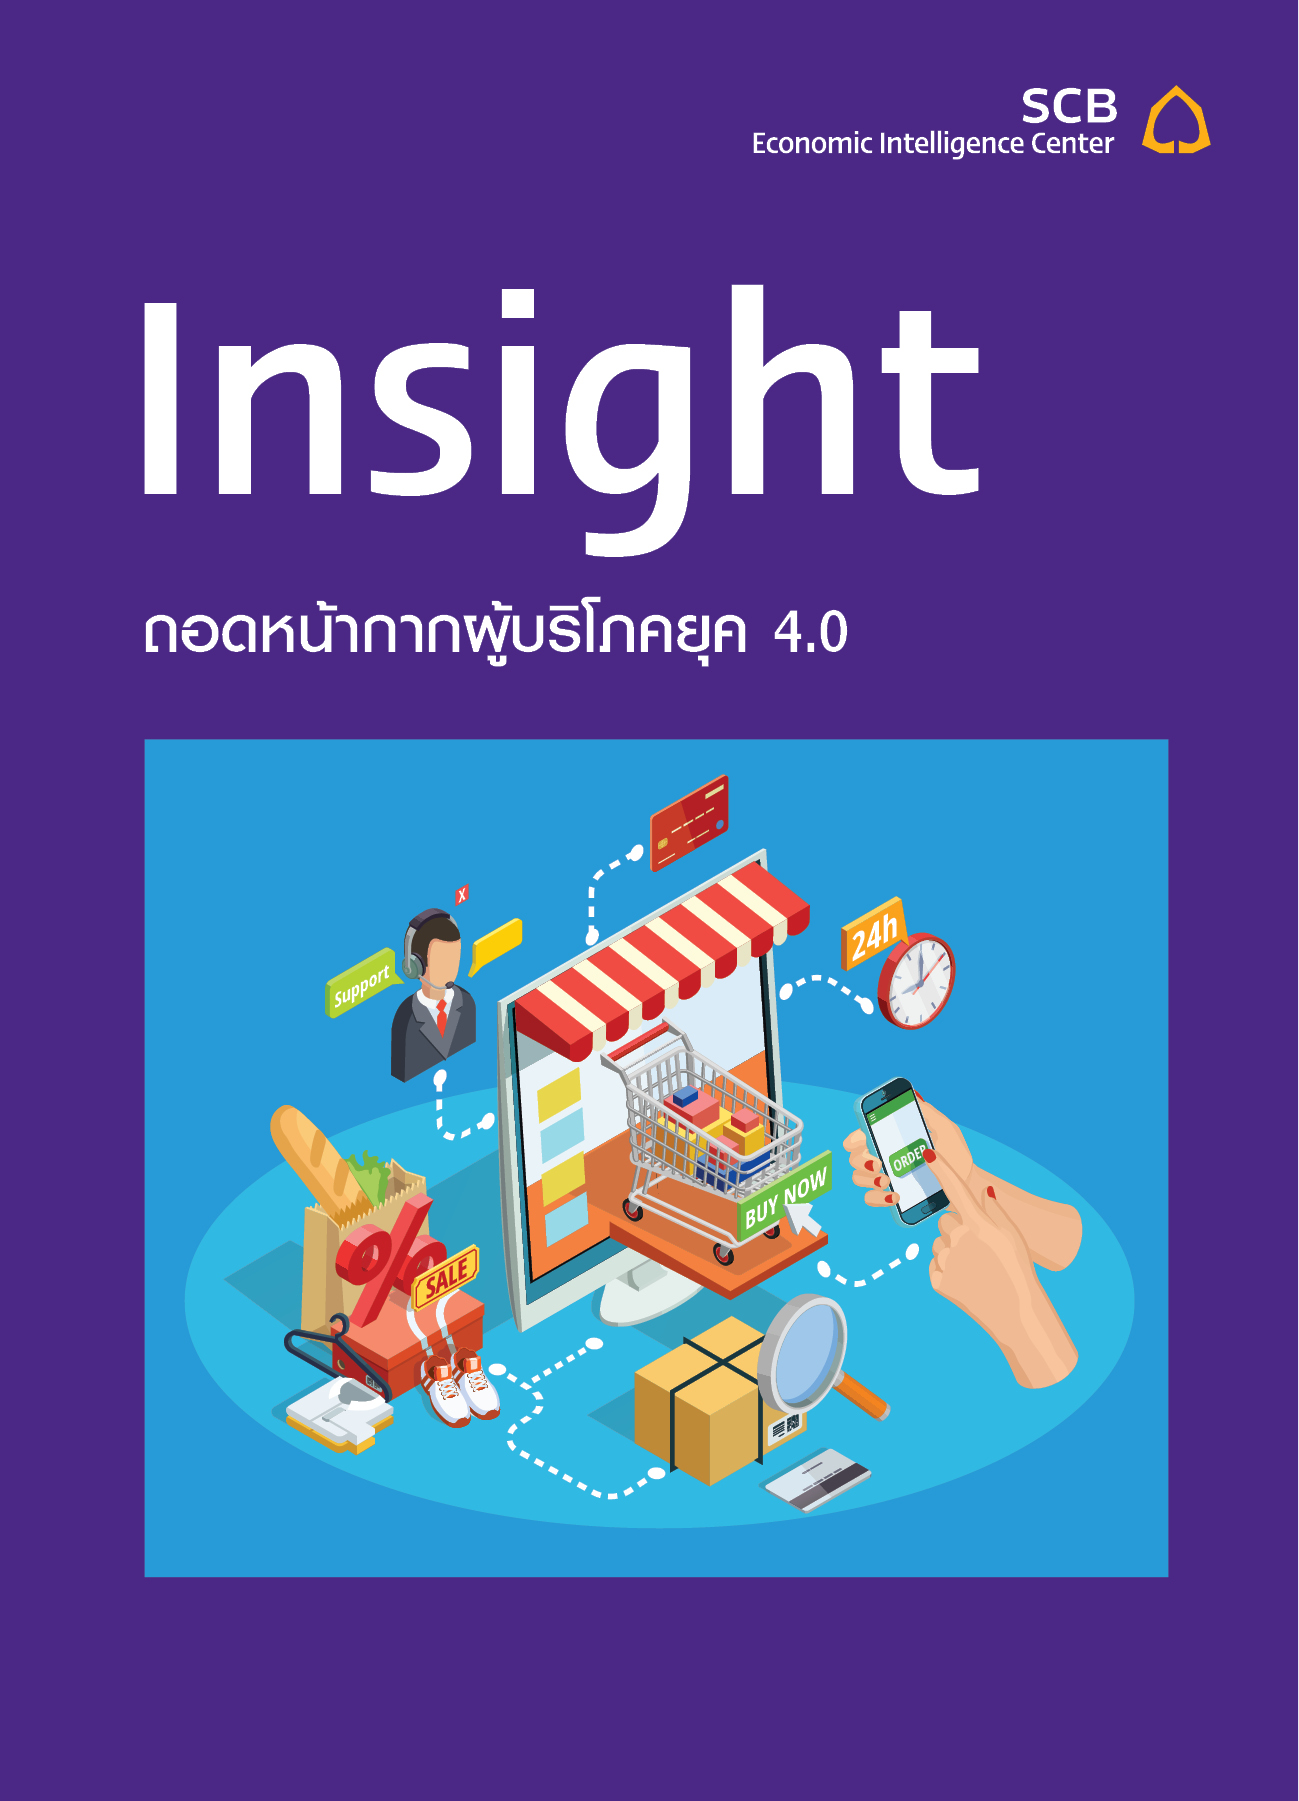 EIC_Insight_consumer_2017_cover.jpg